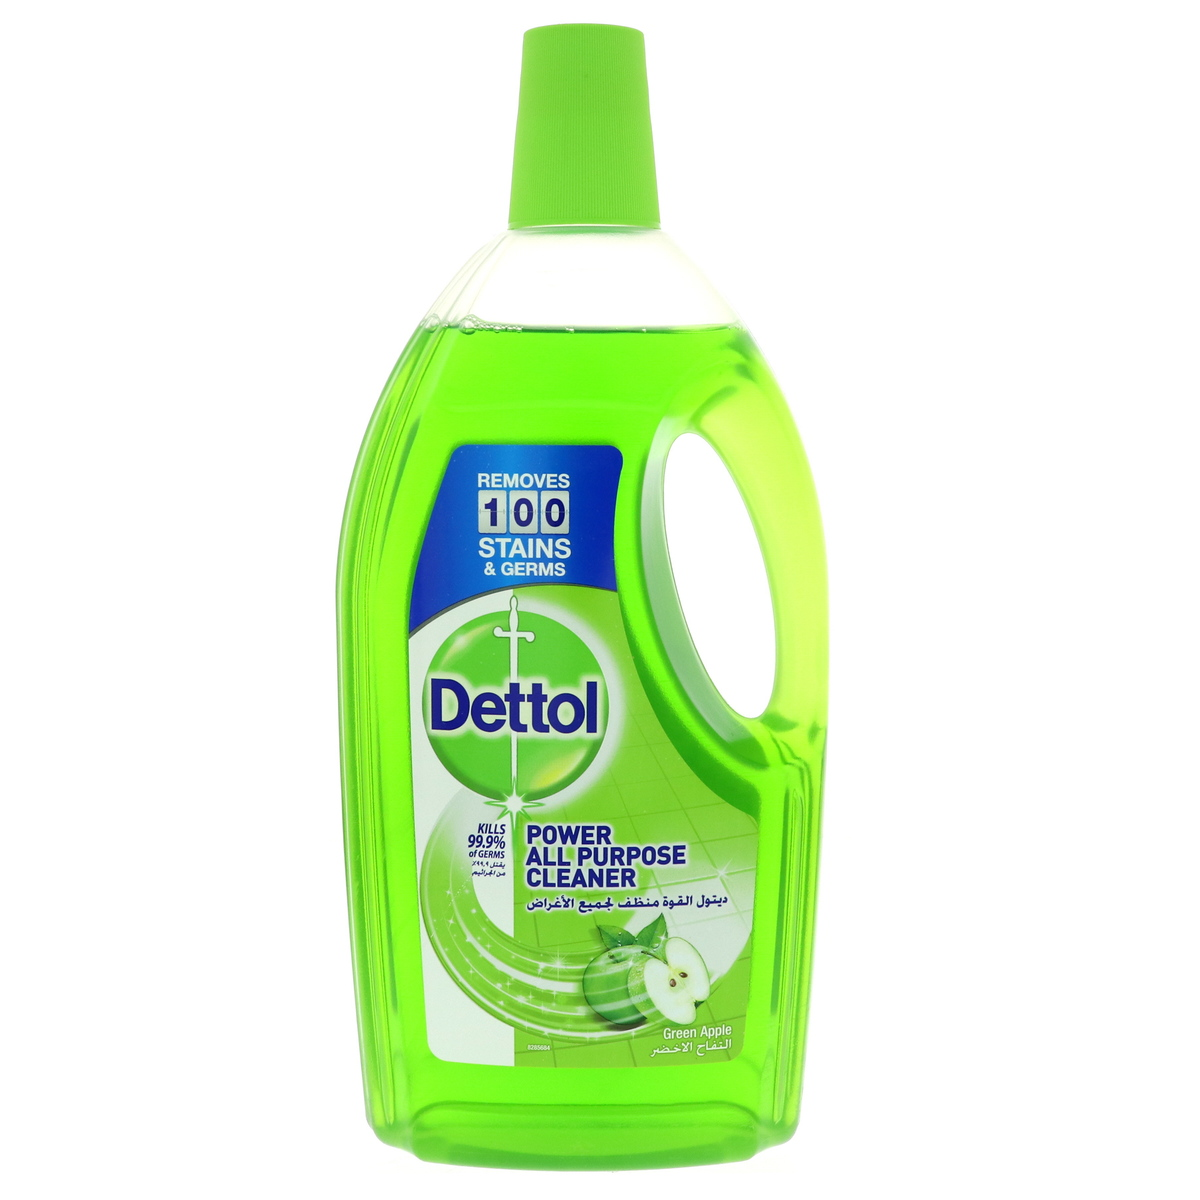 Dettol Power All-Purpose Cleaner Green Apple - 1.8L (pc)